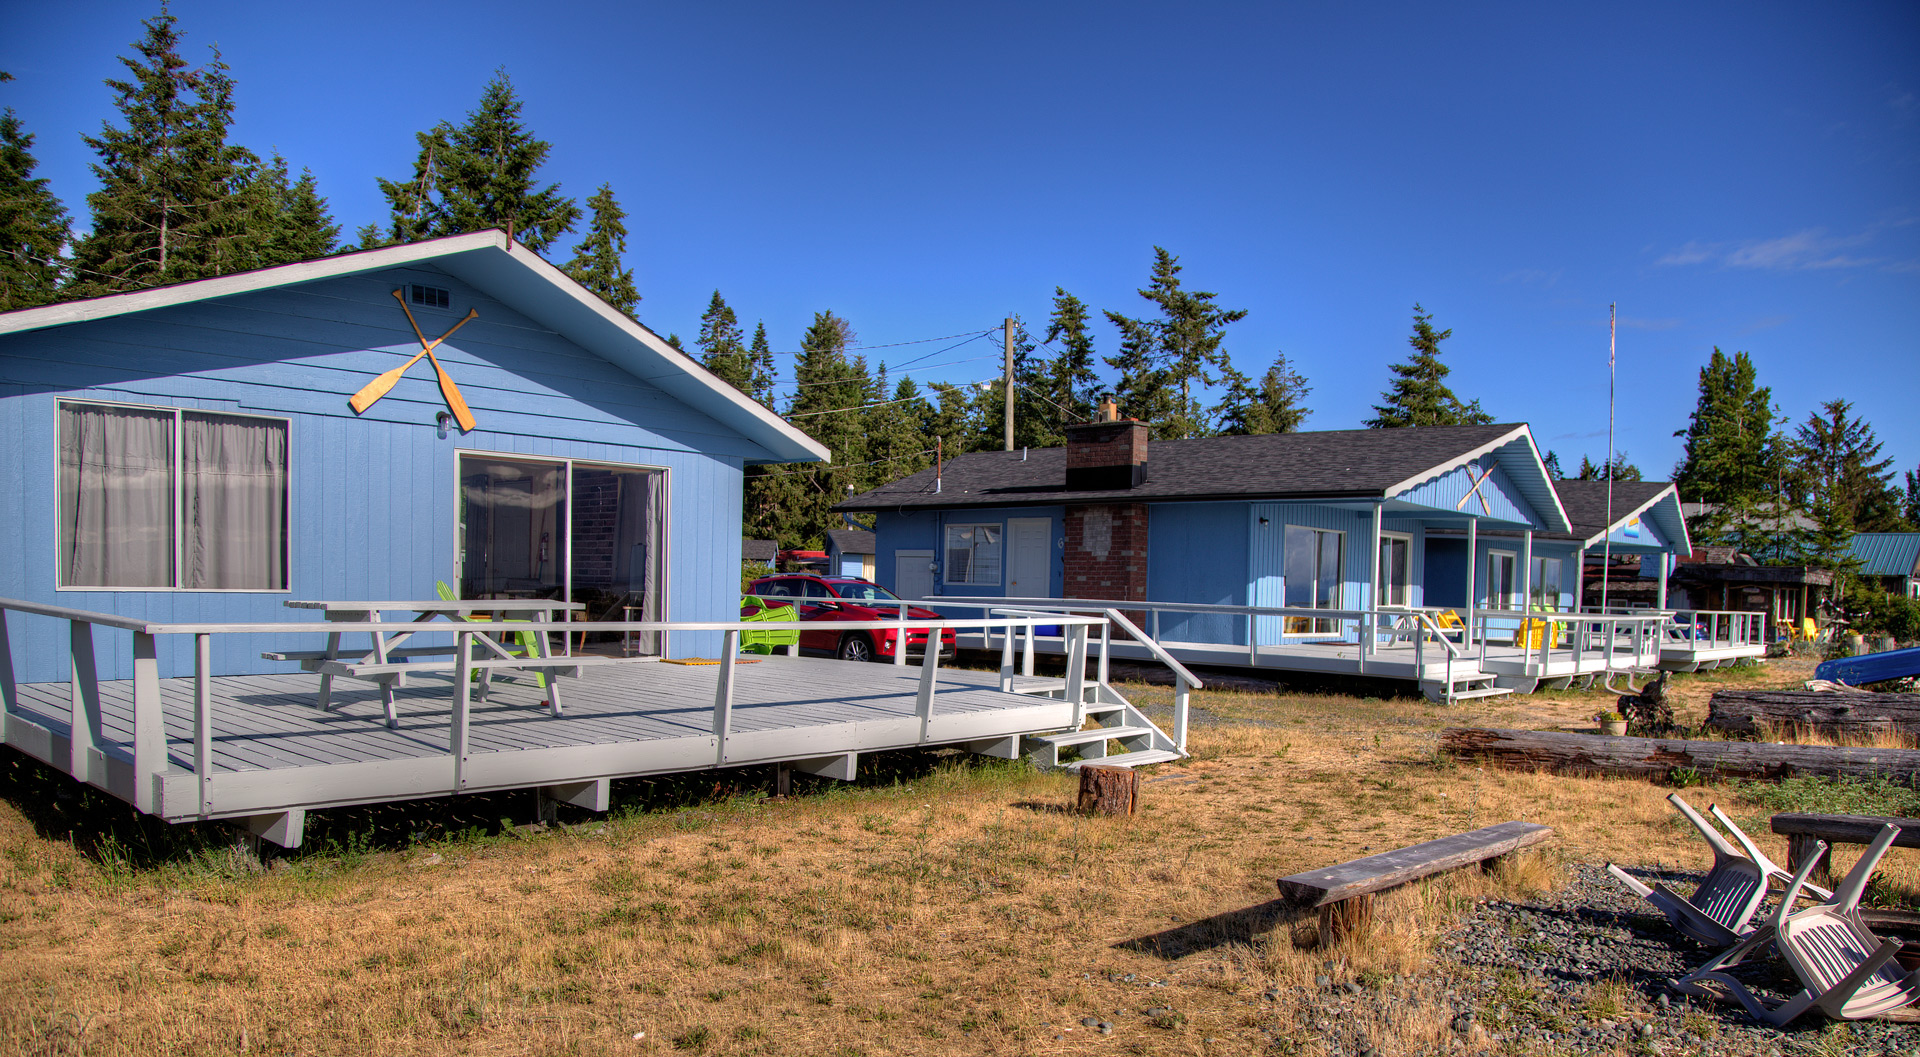 Amenities - Fully stocked kitchens, most with fireplaces and large sundecks, 4 cabins boast private outdoor fire pits. We are pet friendly from Sept through June and family friendly year round with many activities in close vicinity as well as our beautiful safe sandy beach and green spaces to play on site.